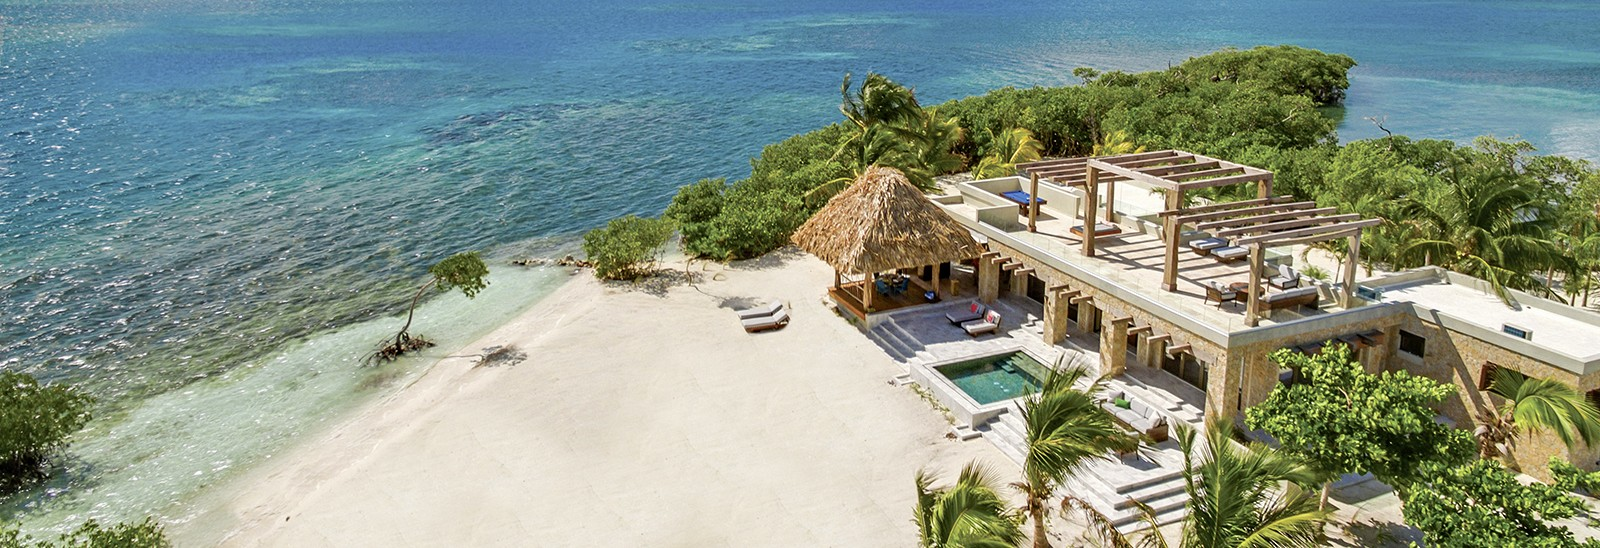 DESTINATION GUIDE: You'd better Belize it